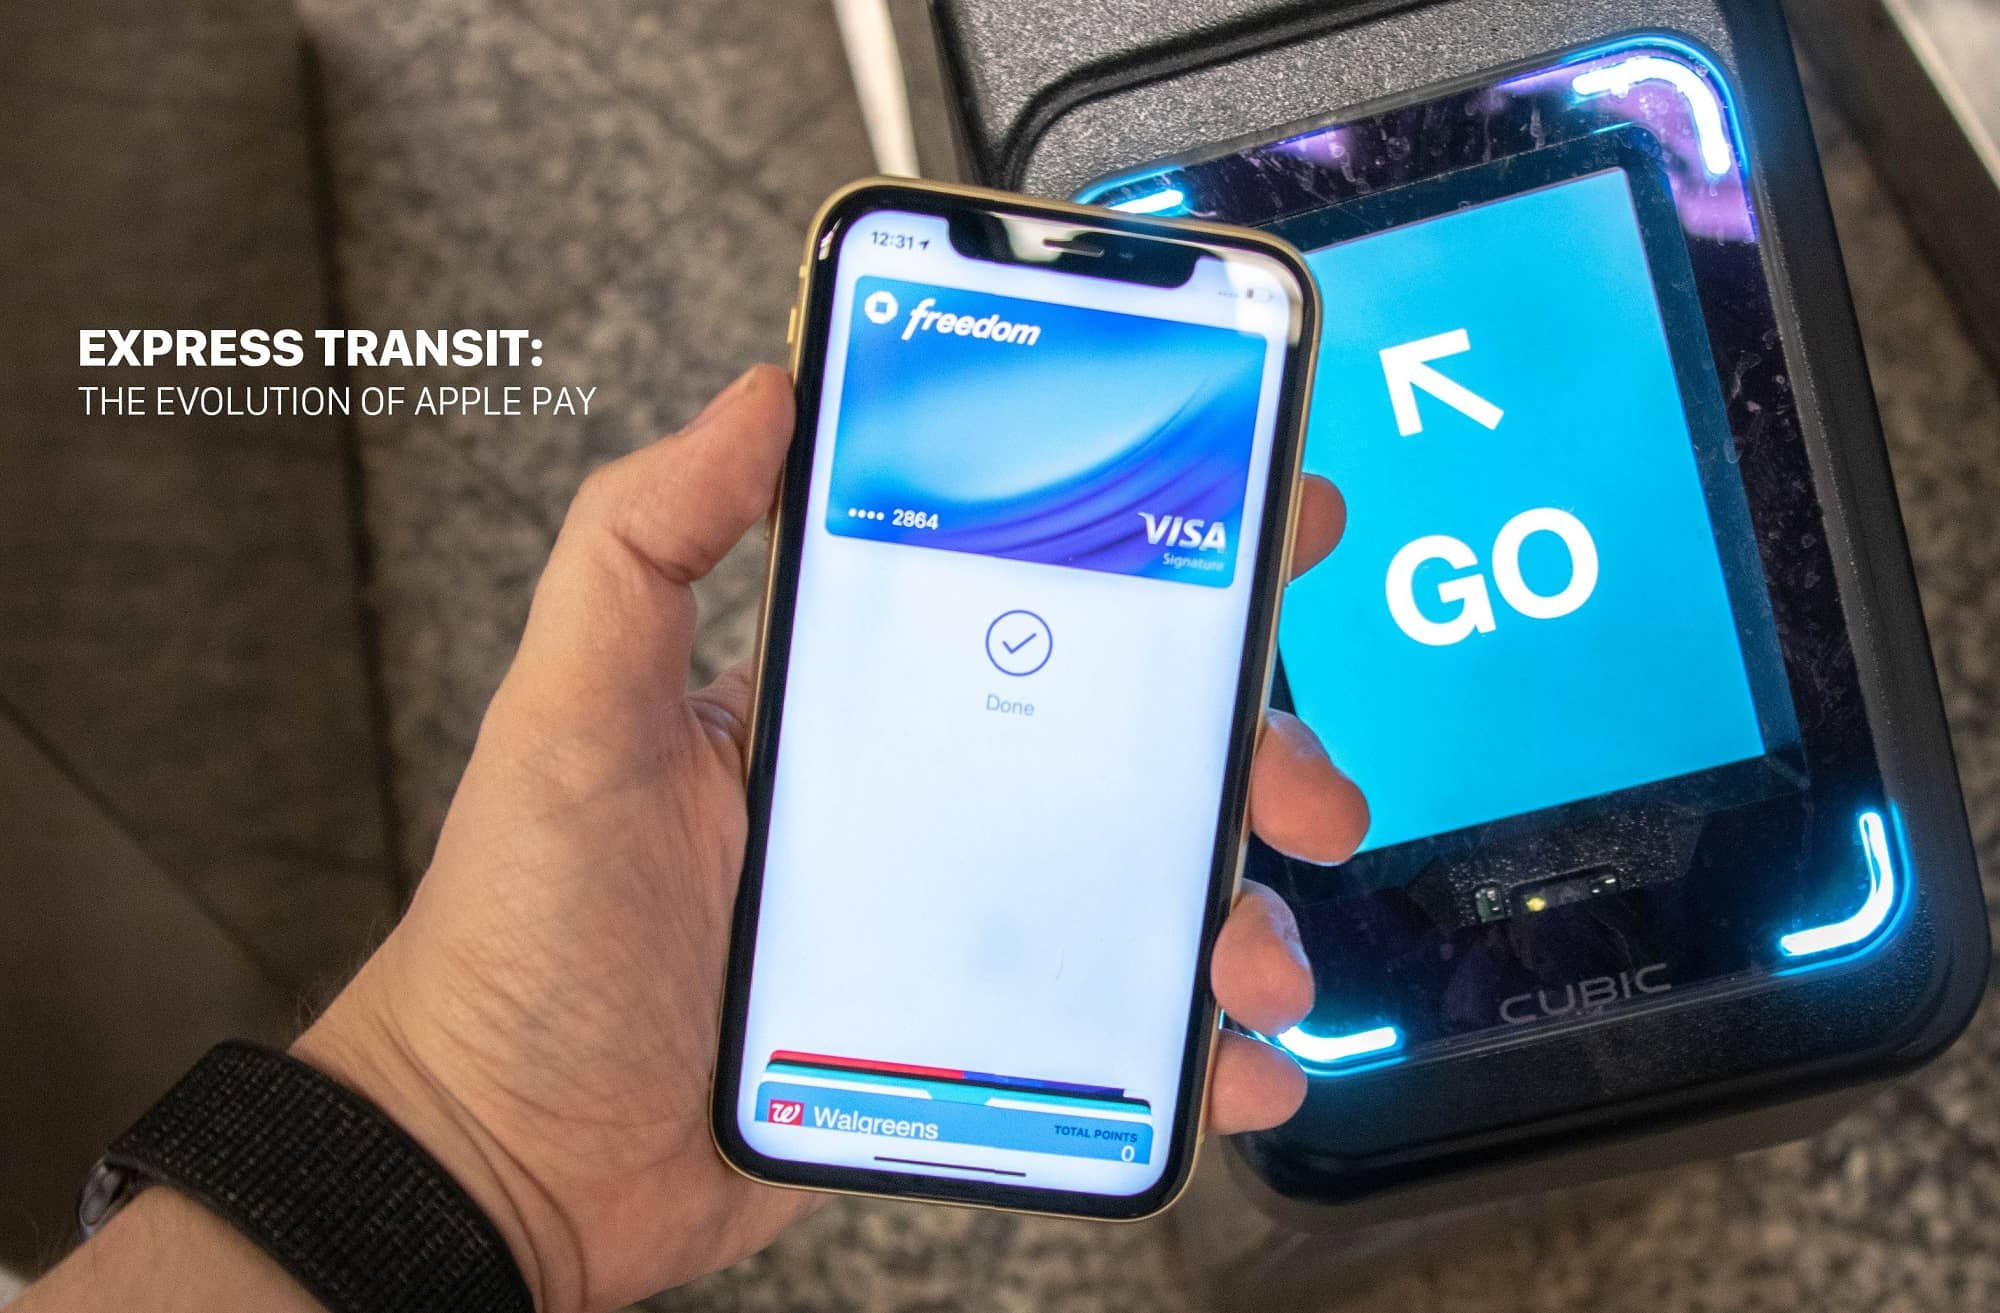 Express Transit: The Evolution Of Apple Pay